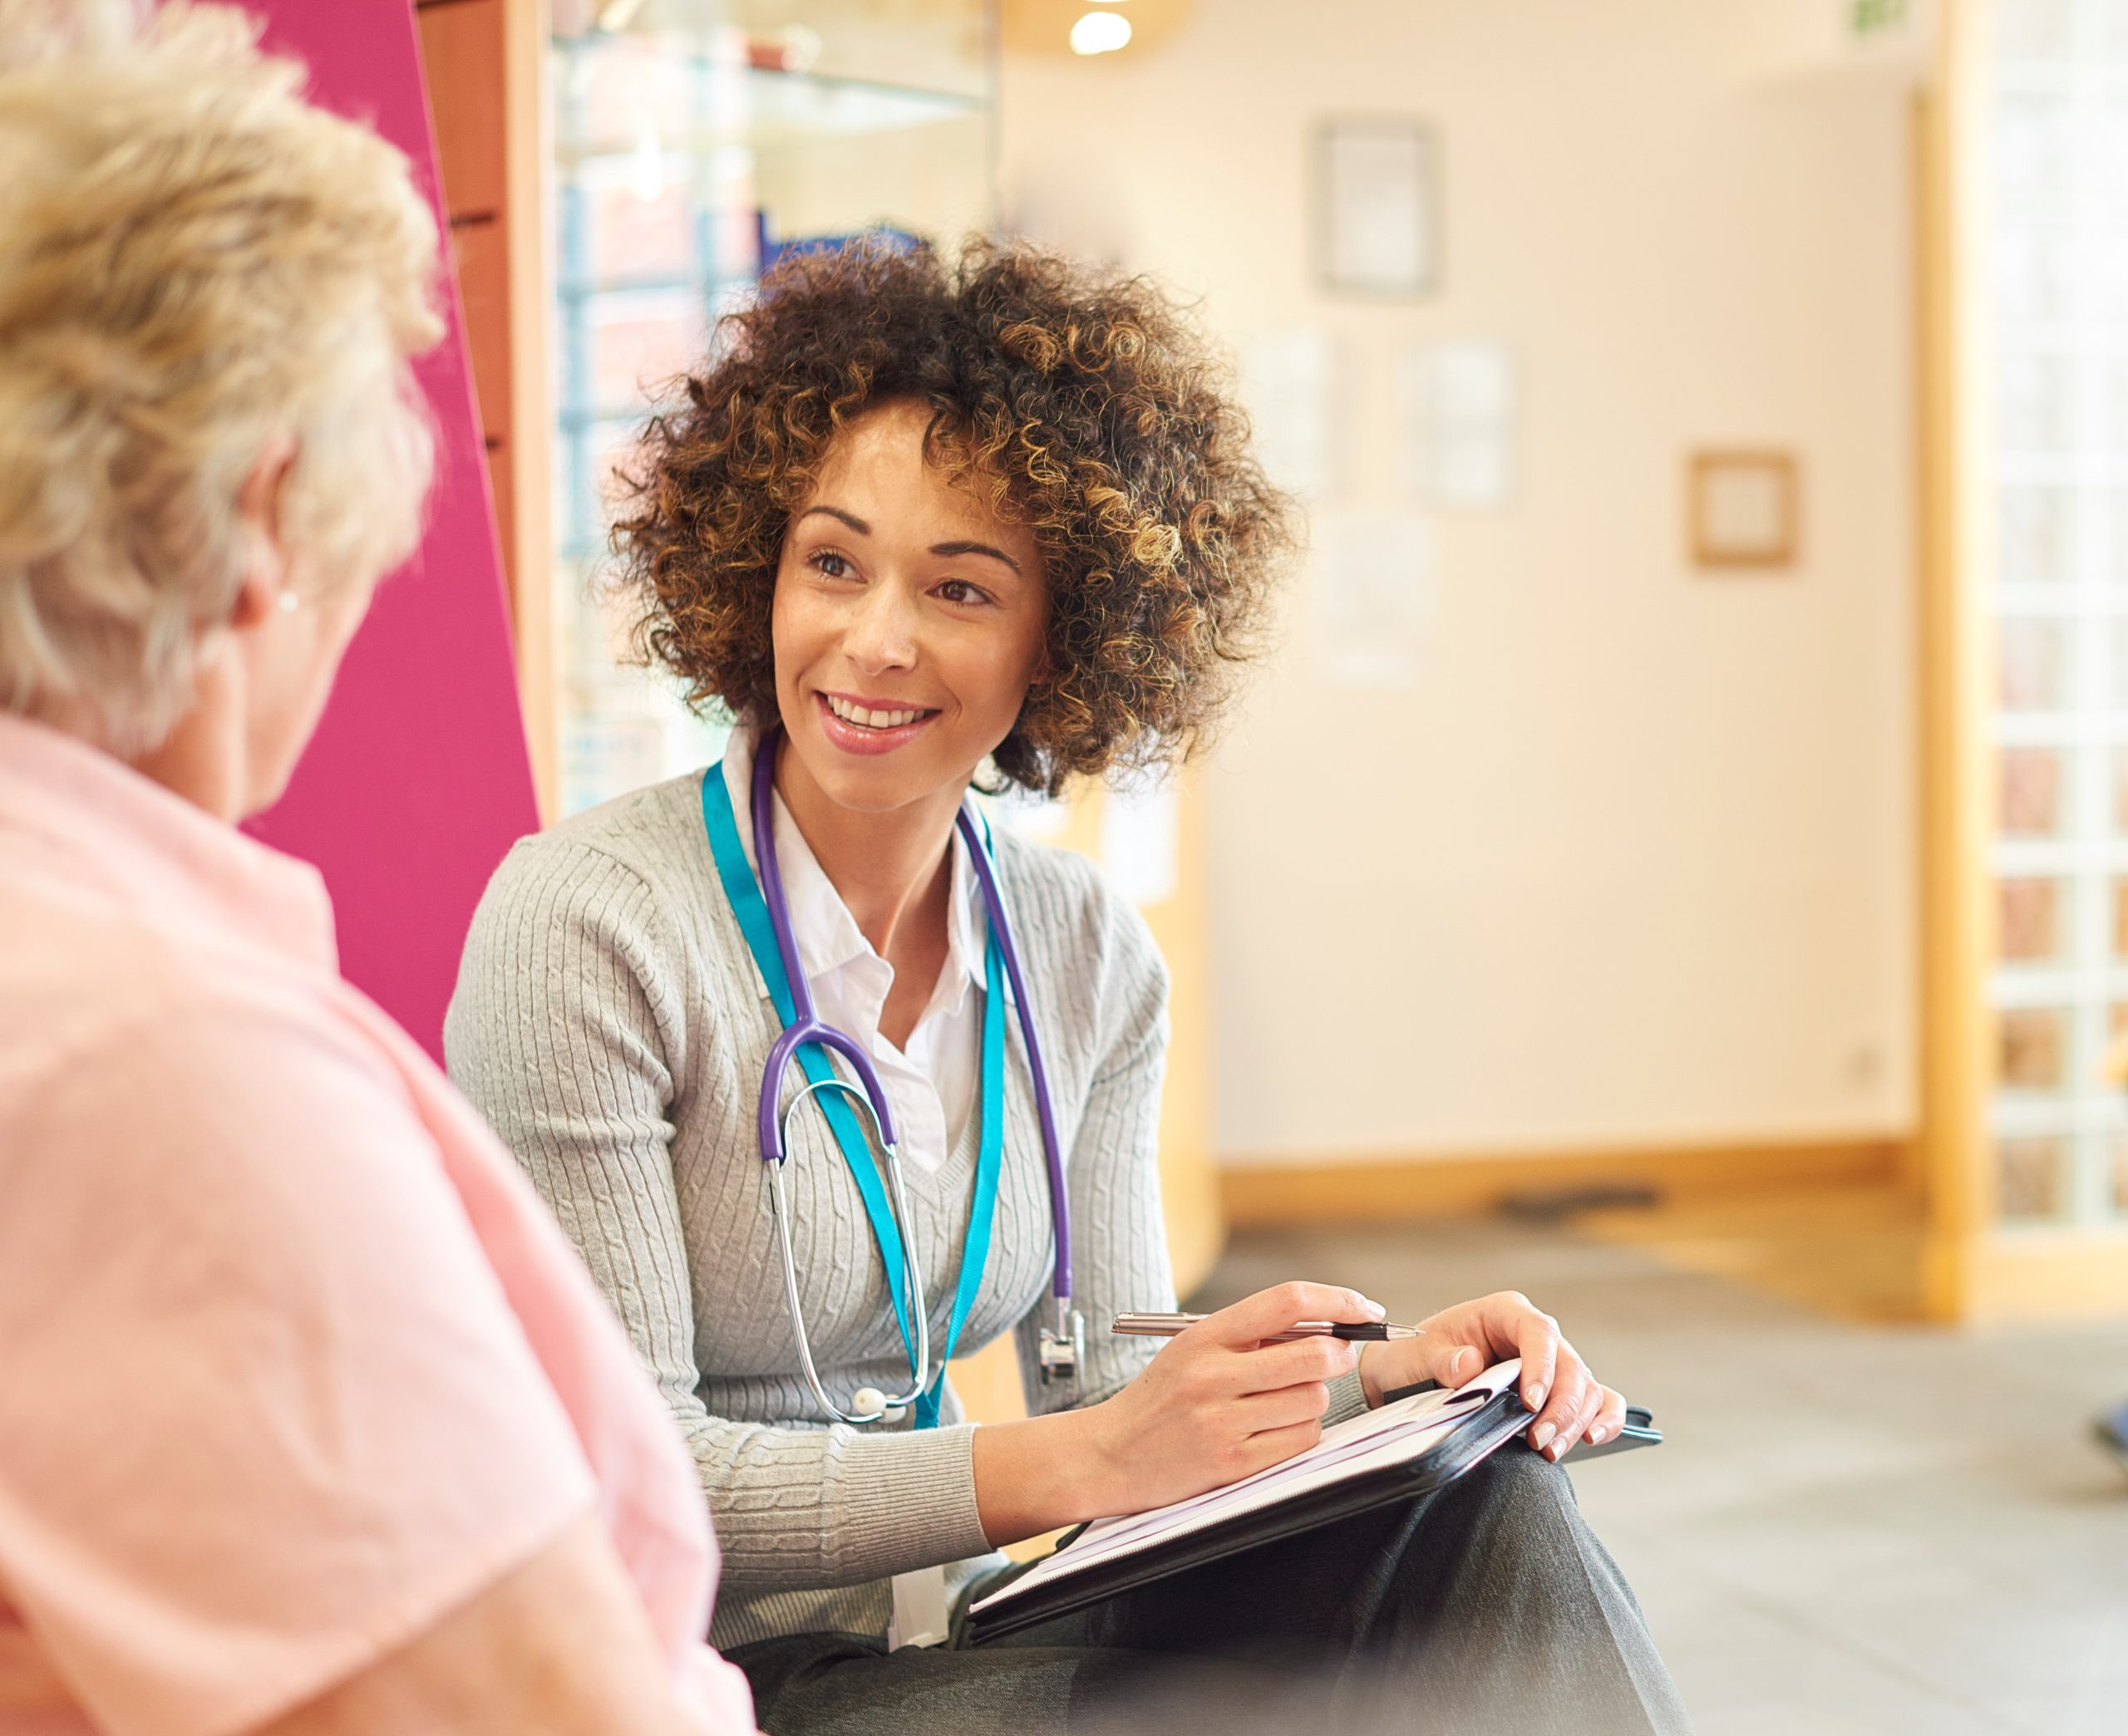 Chatting to senior patient in the waiting room